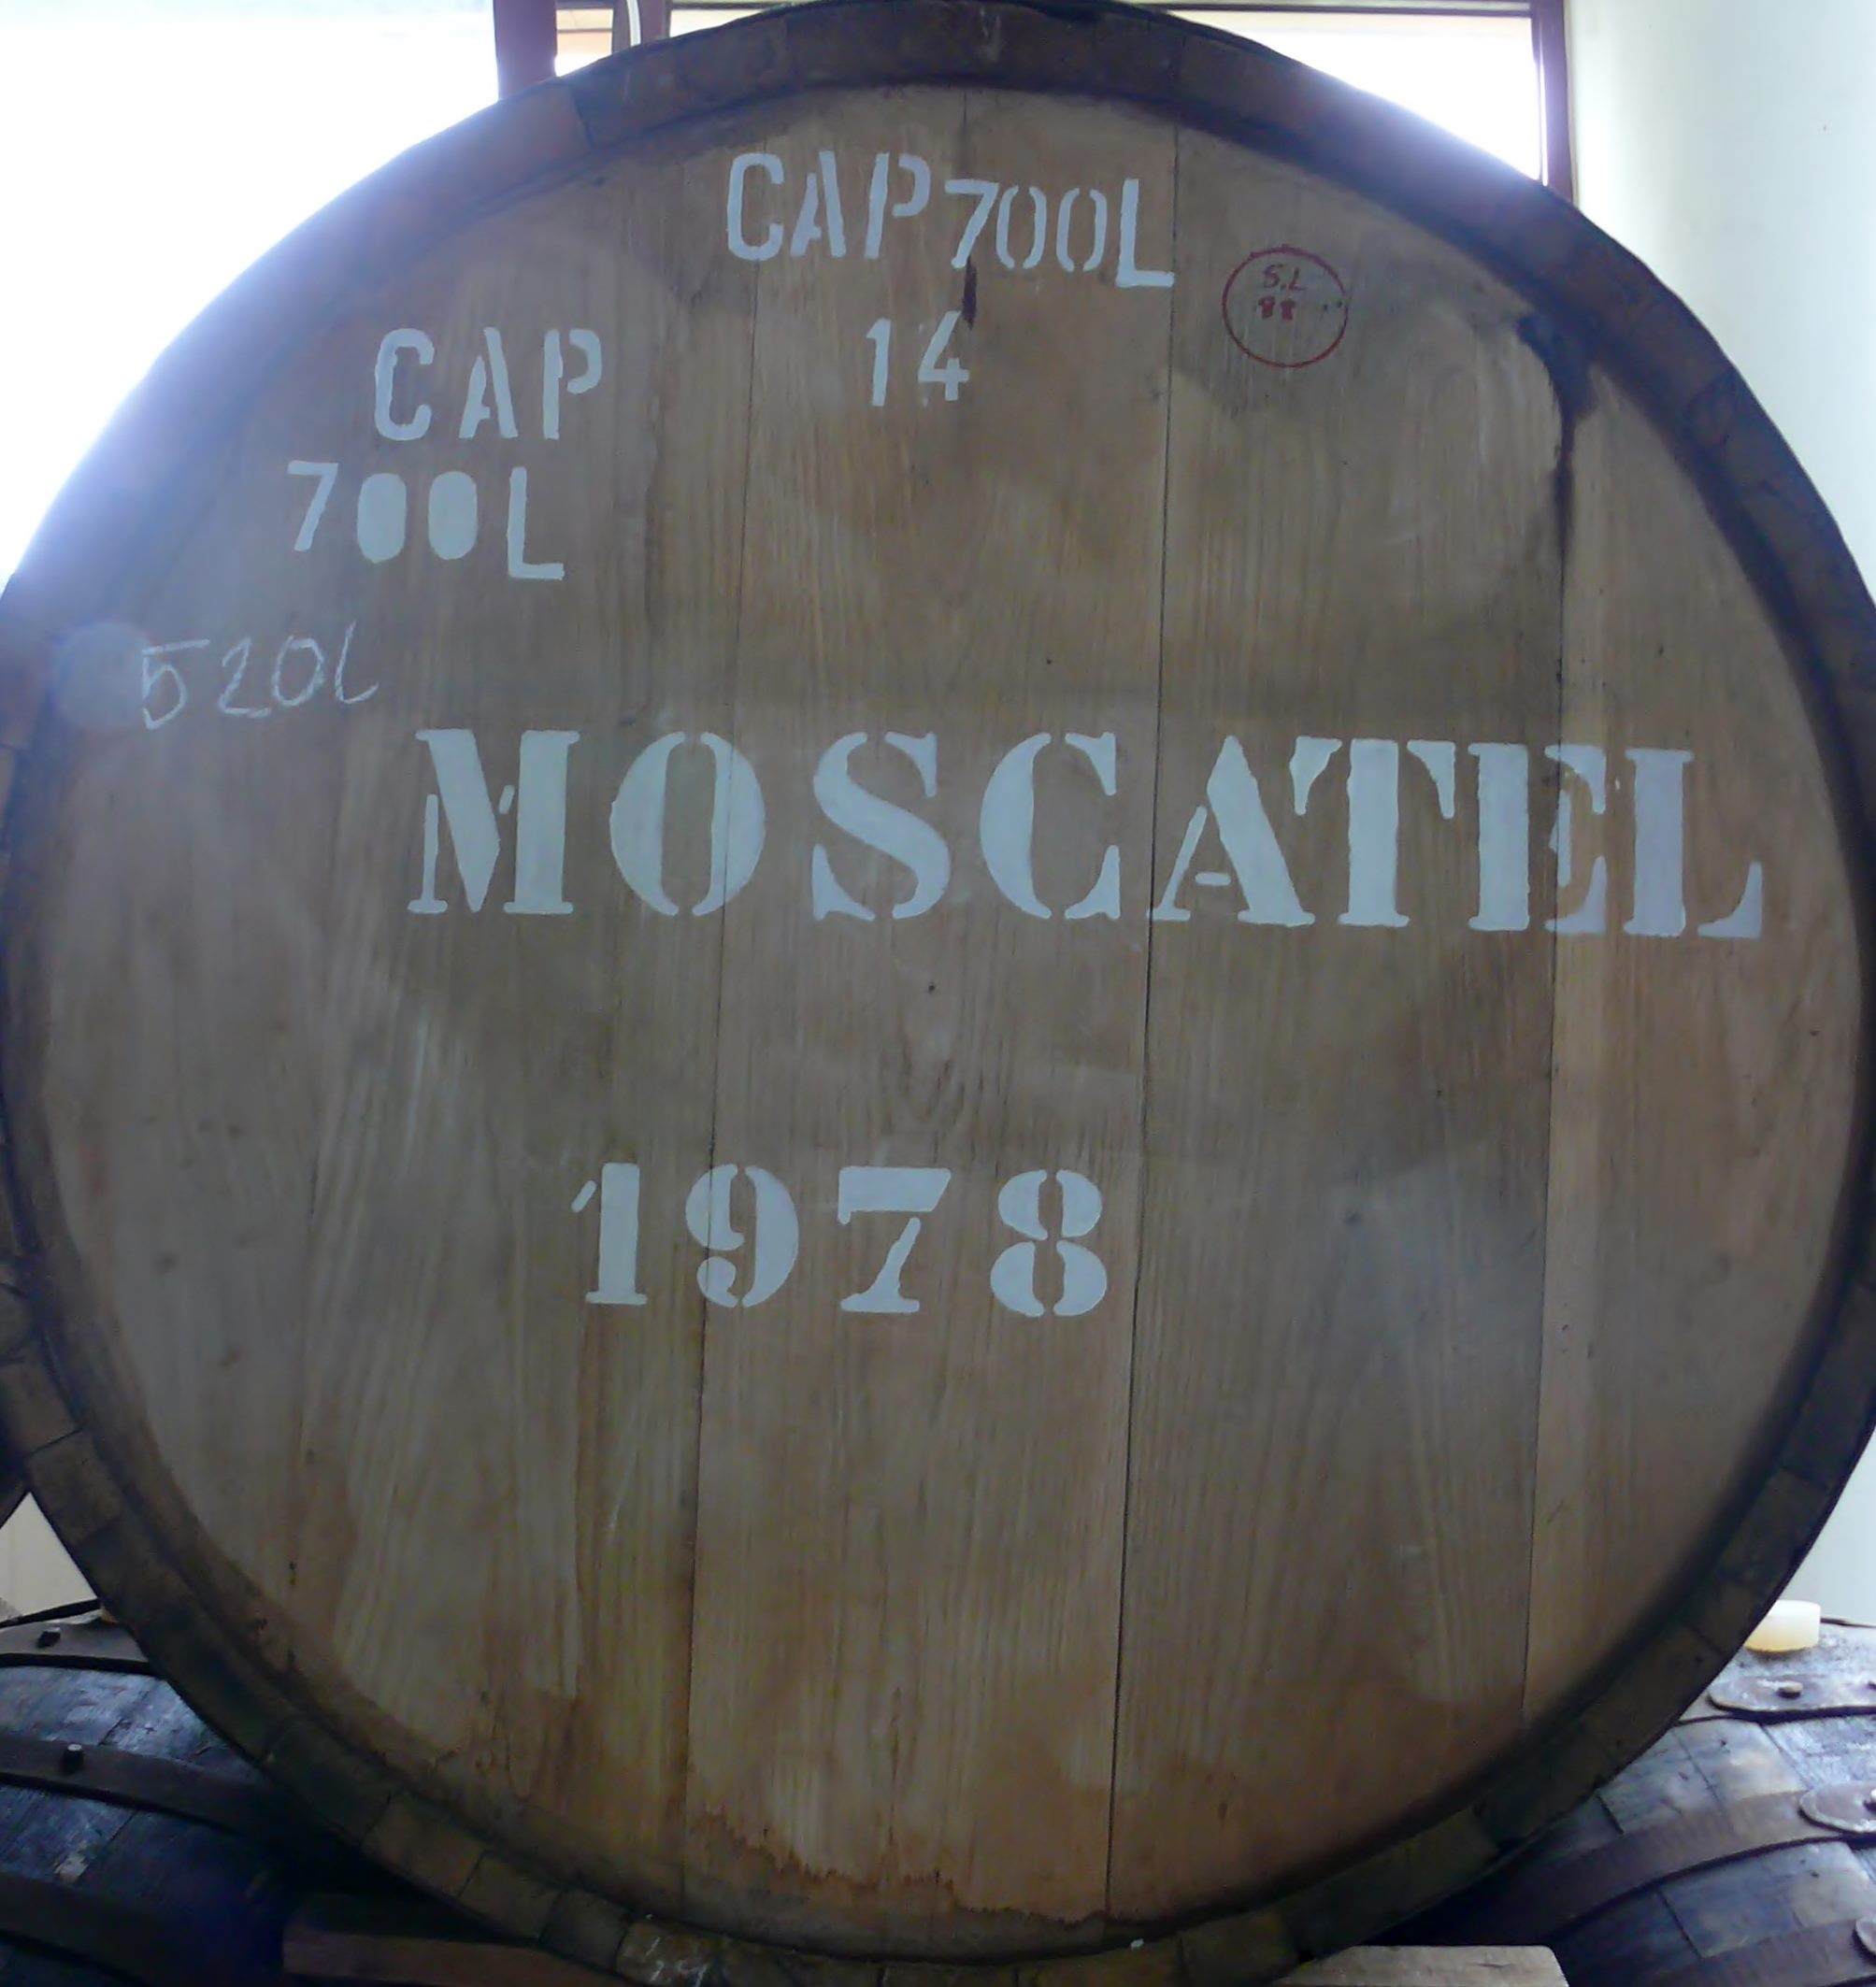 Moscatel at Henriques and Henriques